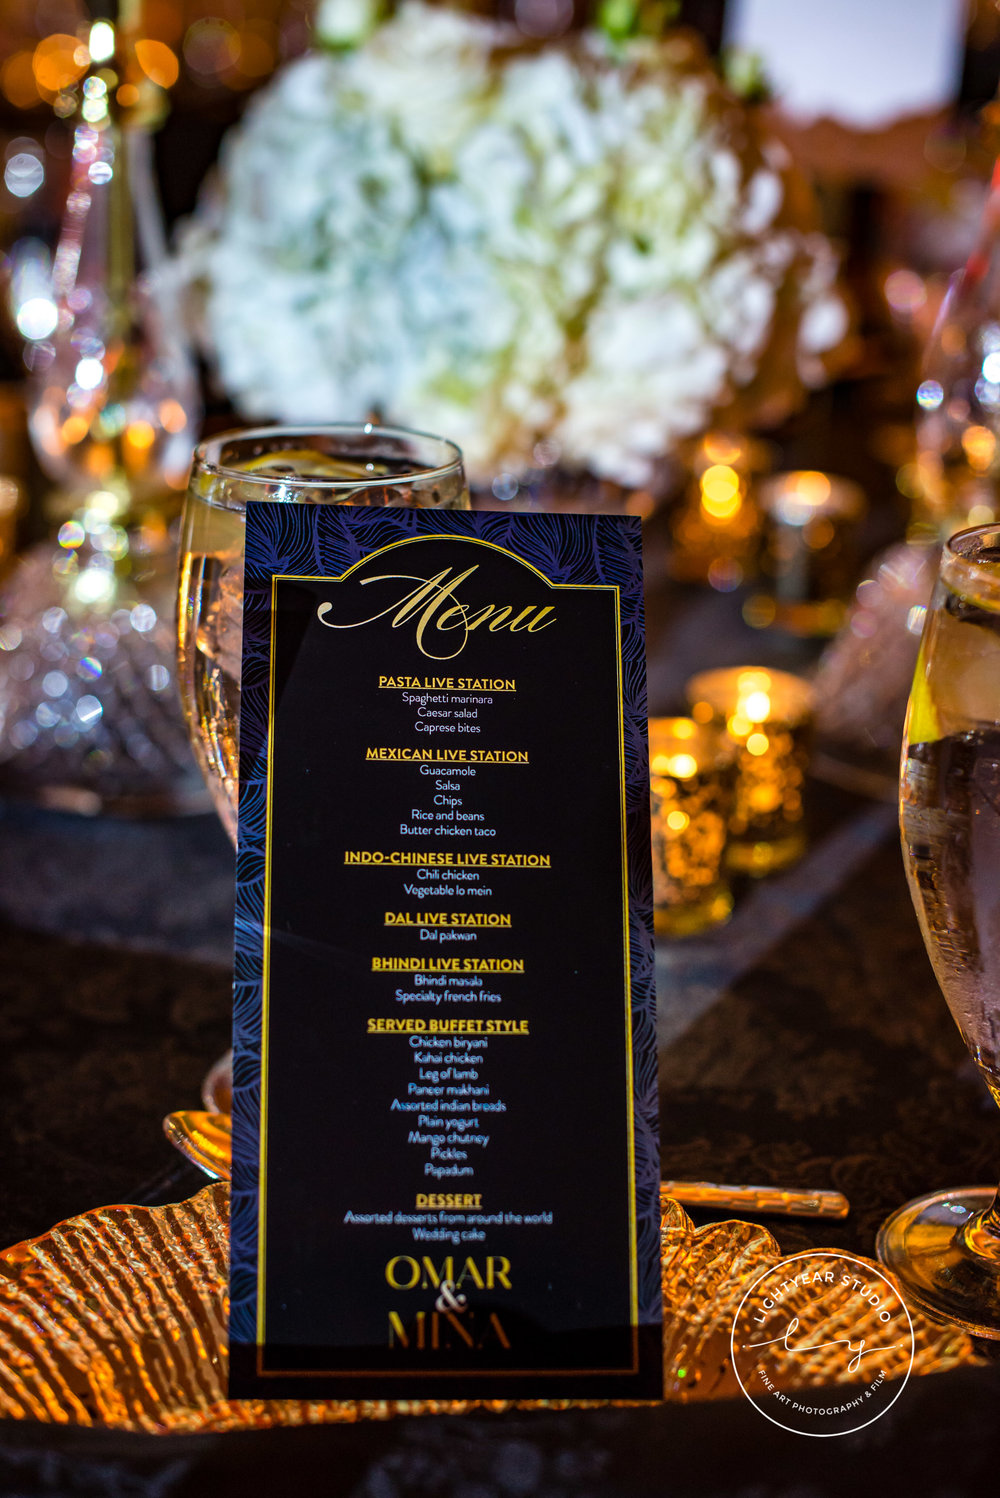 INDIAN WEDDING MENU.jpg